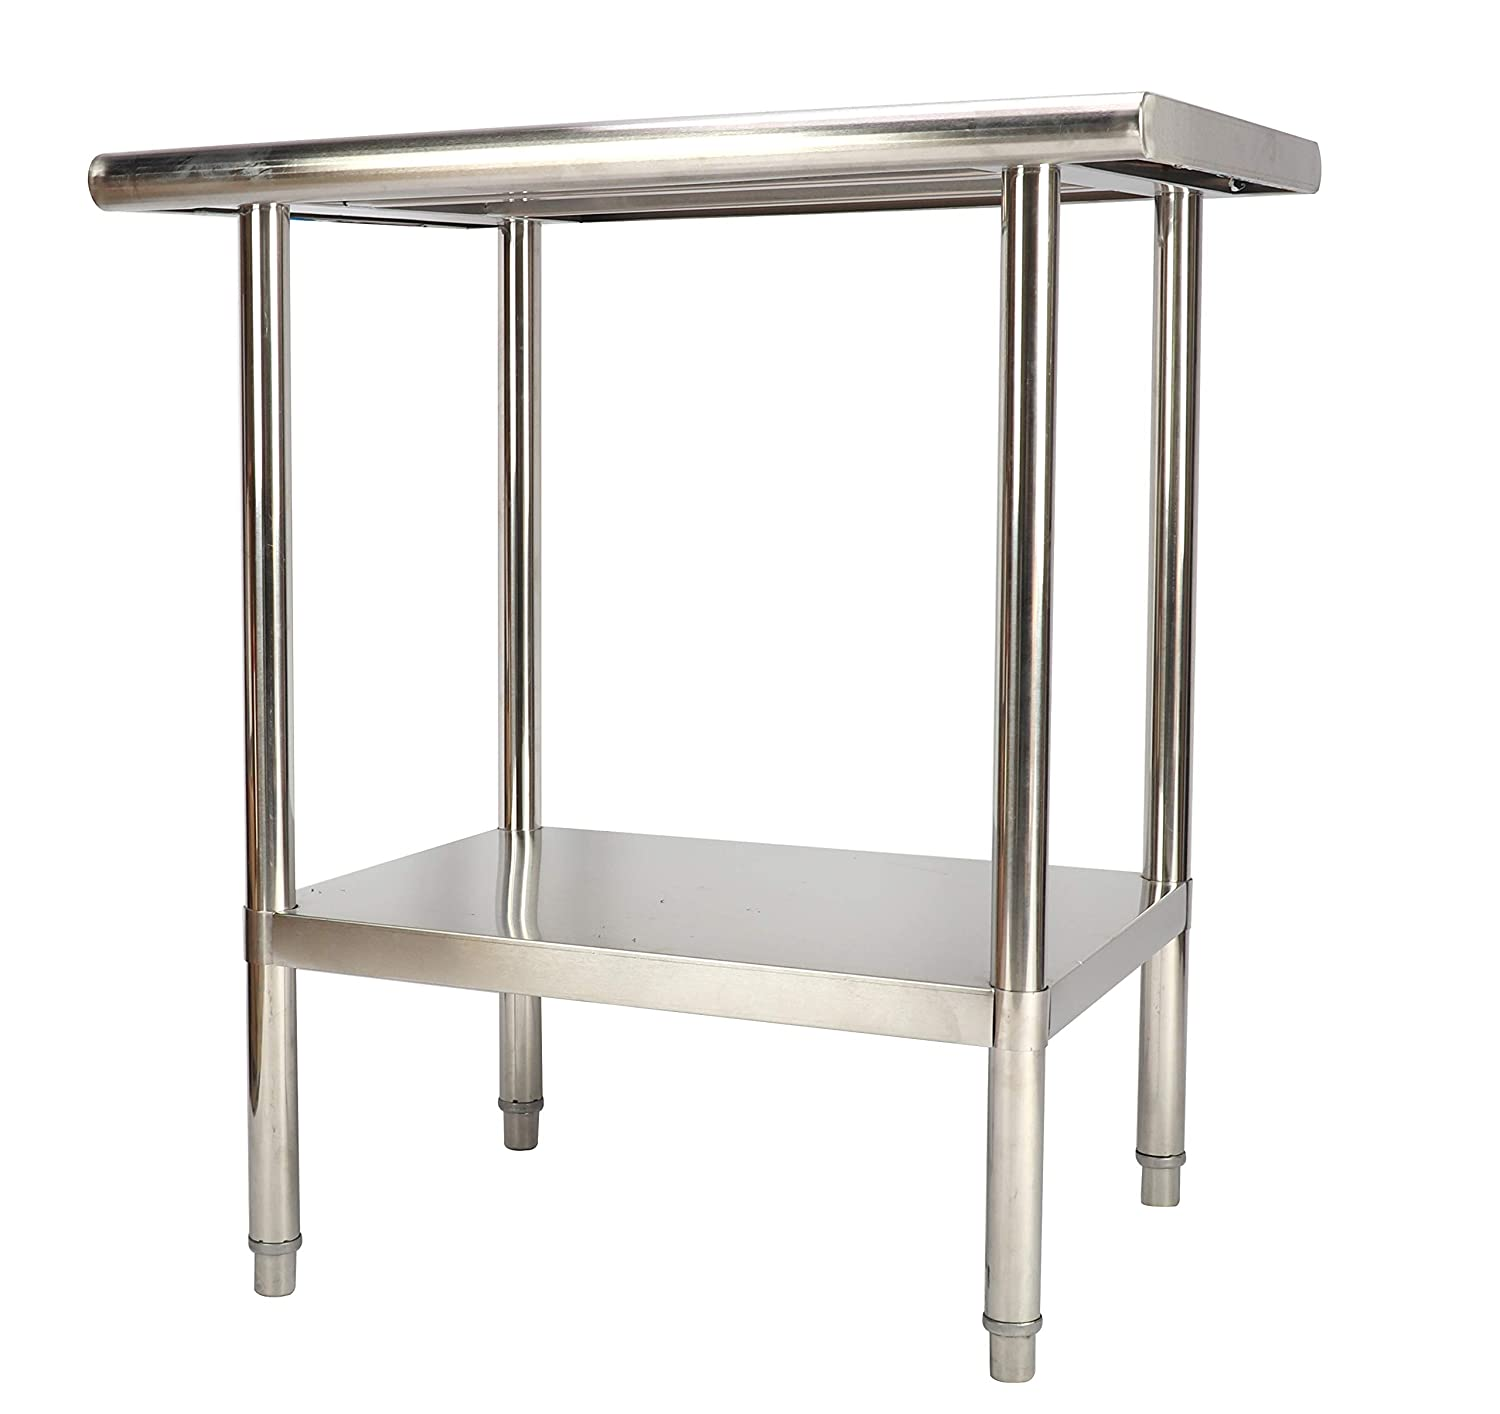 Stainless Steel Work Table 36x24